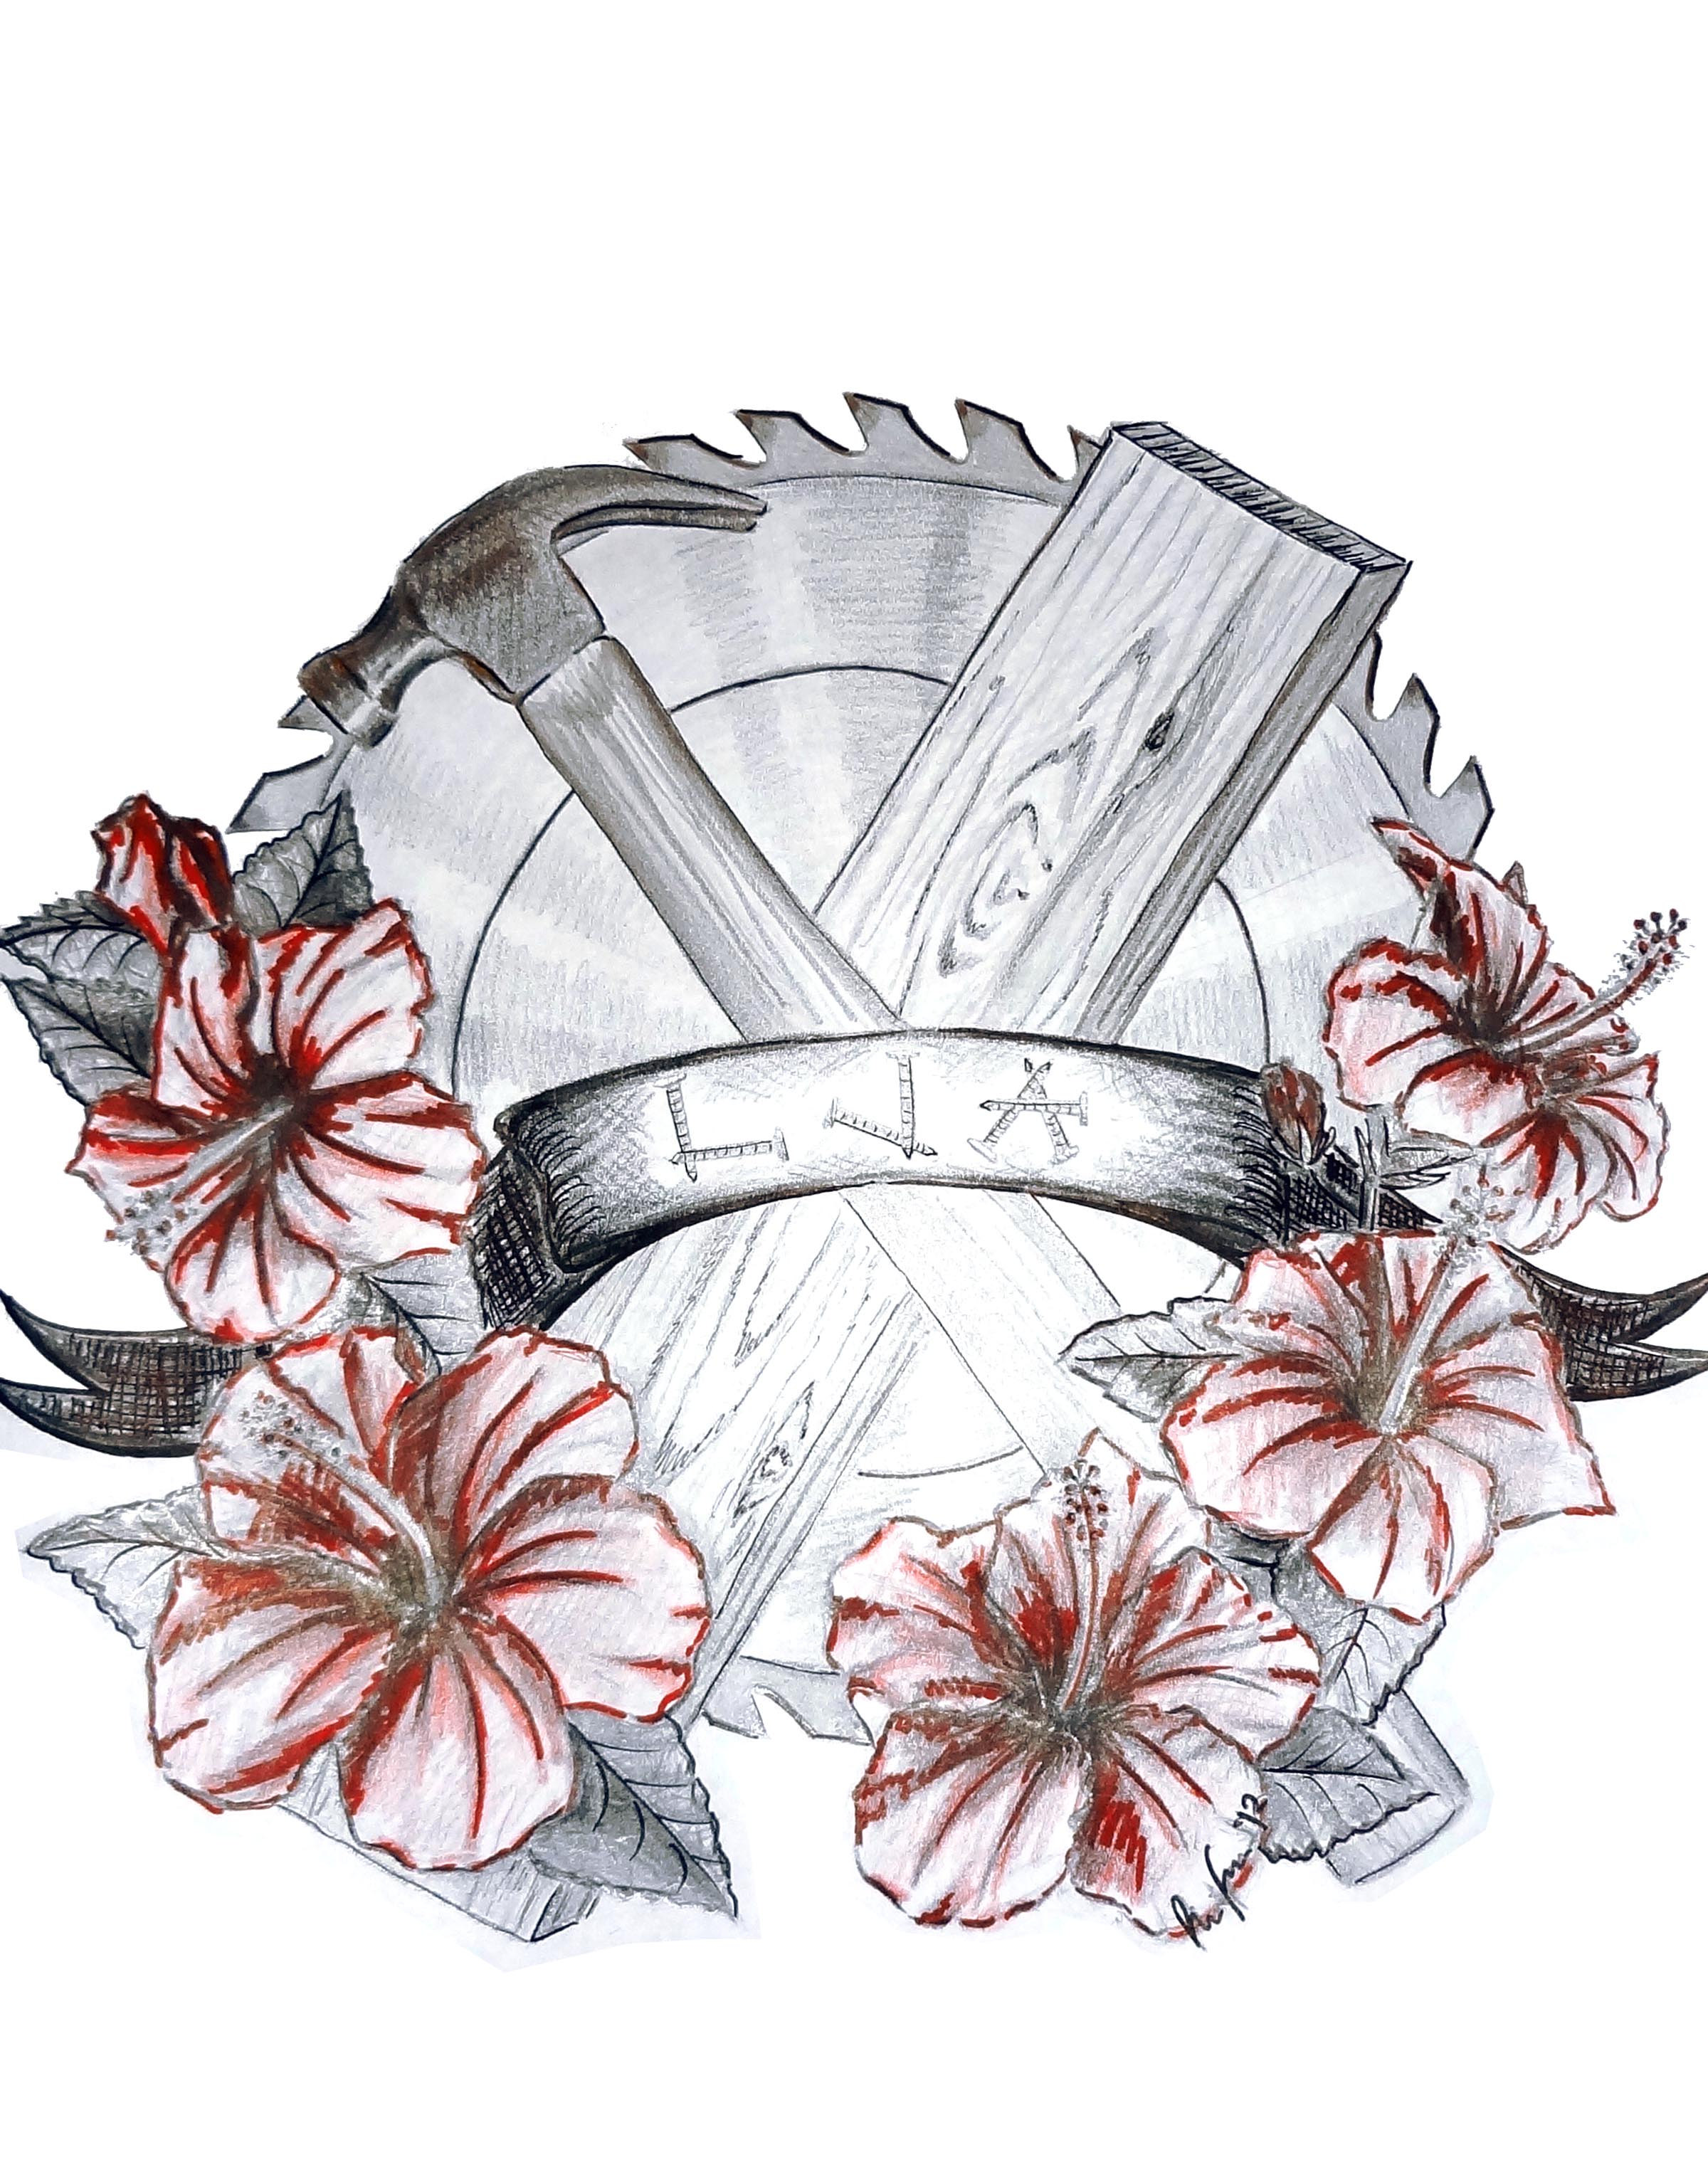 Woodworker Memorial Tattoo Design